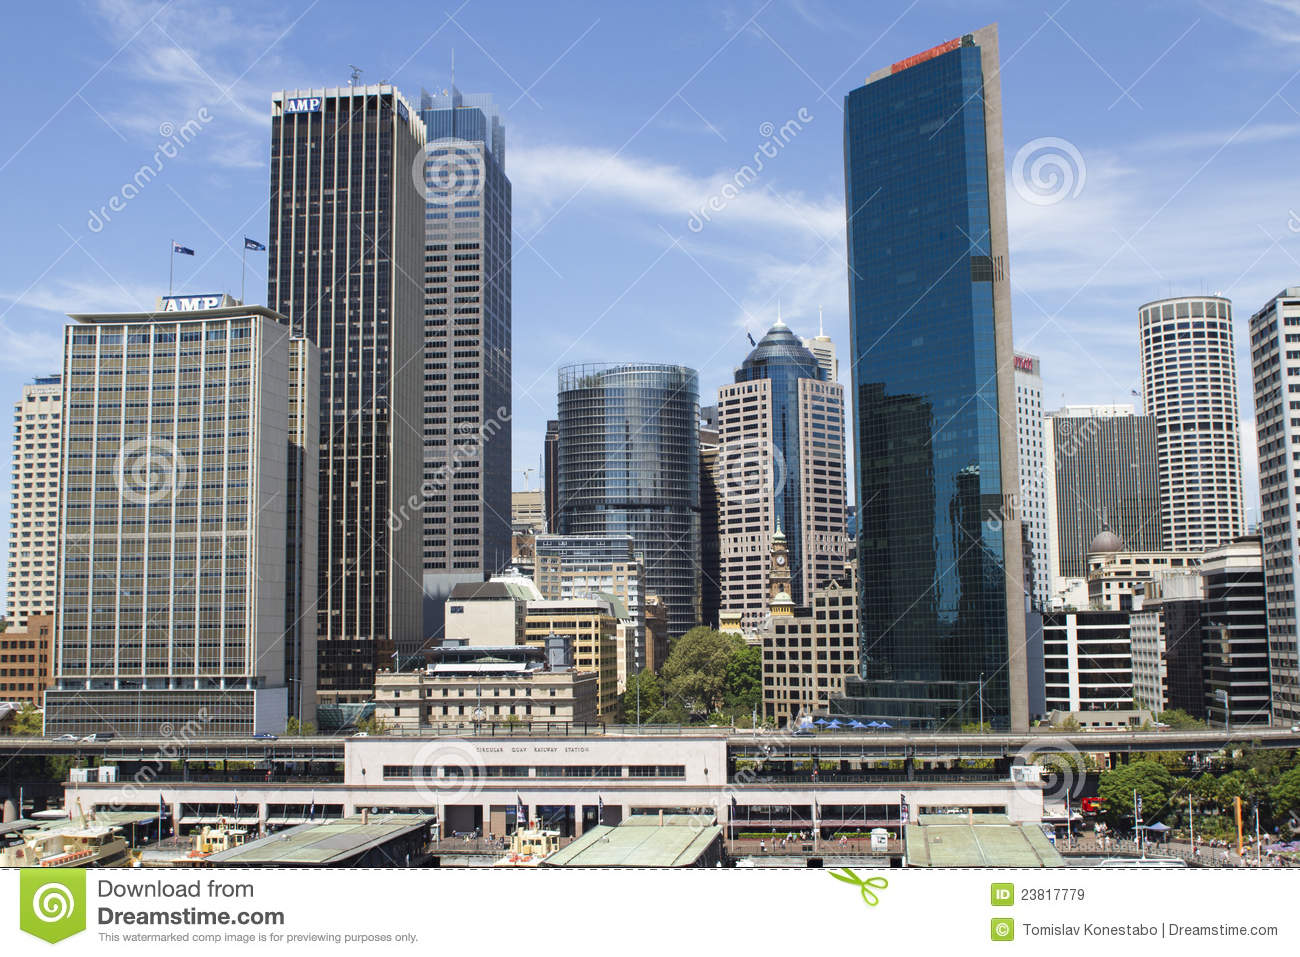 free online personals in sidney center Radiocarbon dating suggests human  and later still by free settlers  sydney was ranked as having the eighth most competitive financial center in.